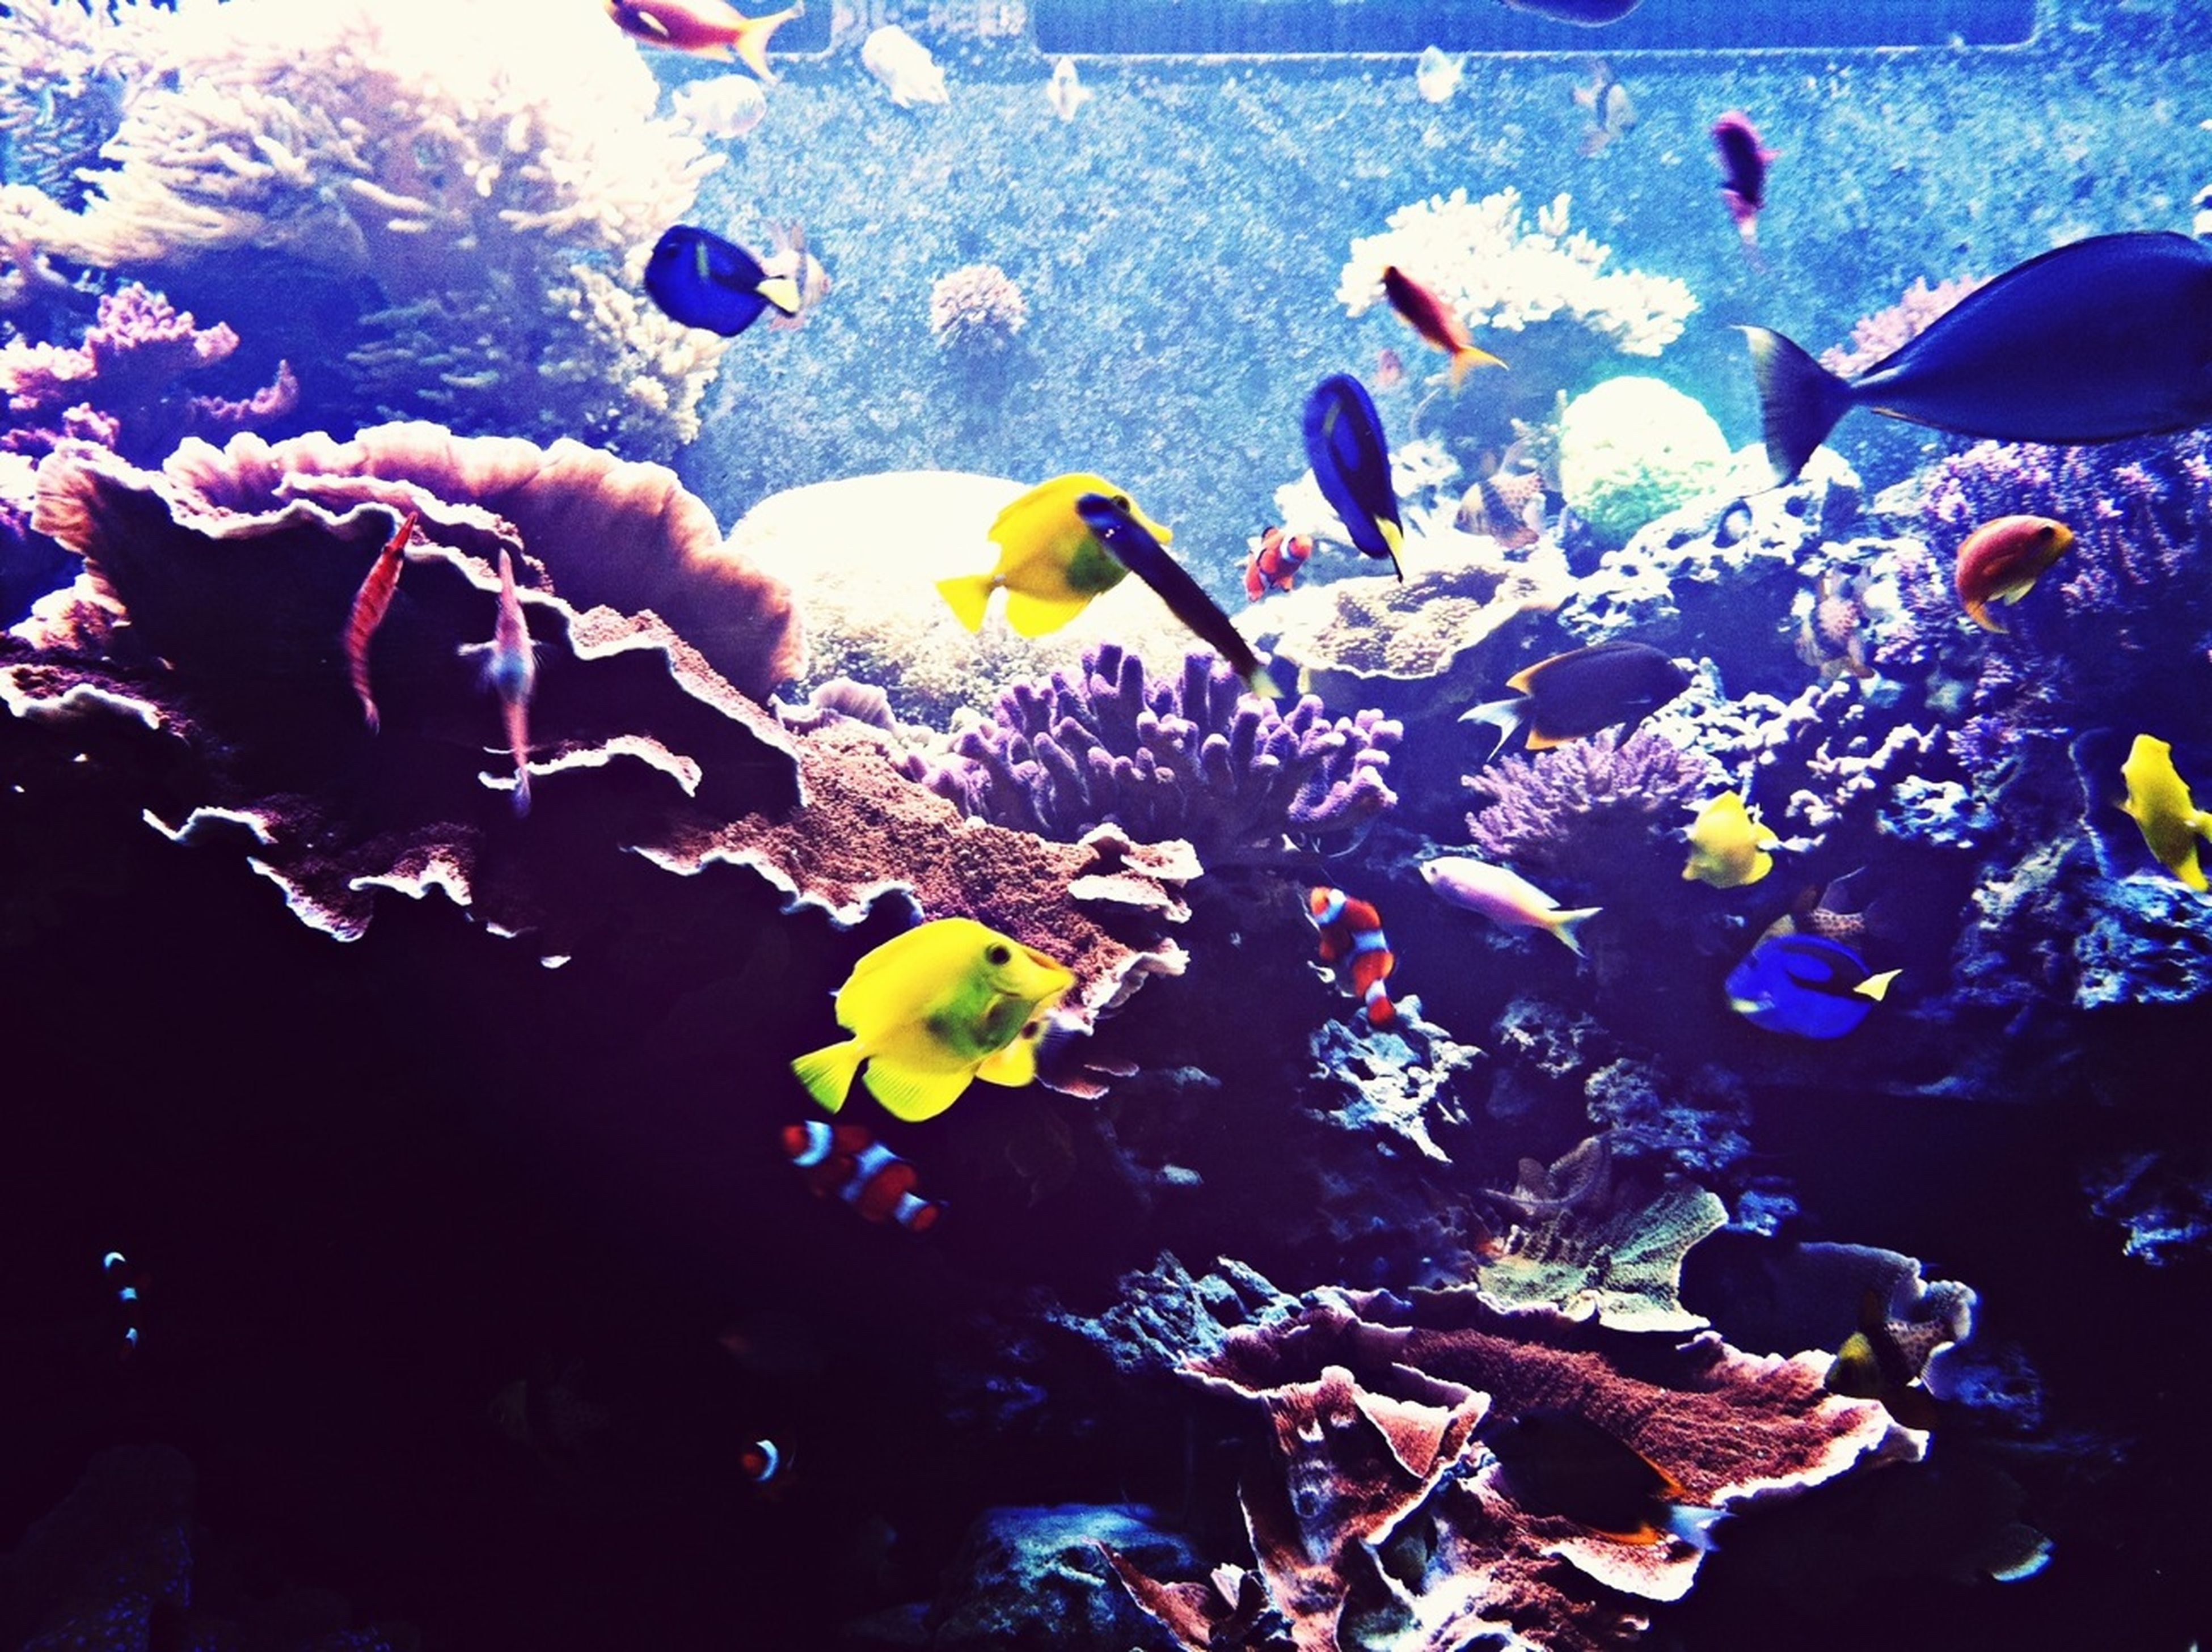 water, high angle view, multi colored, fish, underwater, swimming, sea, sea life, variation, nature, animal themes, school of fish, undersea, blue, floating on water, no people, beauty in nature, abundance, outdoors